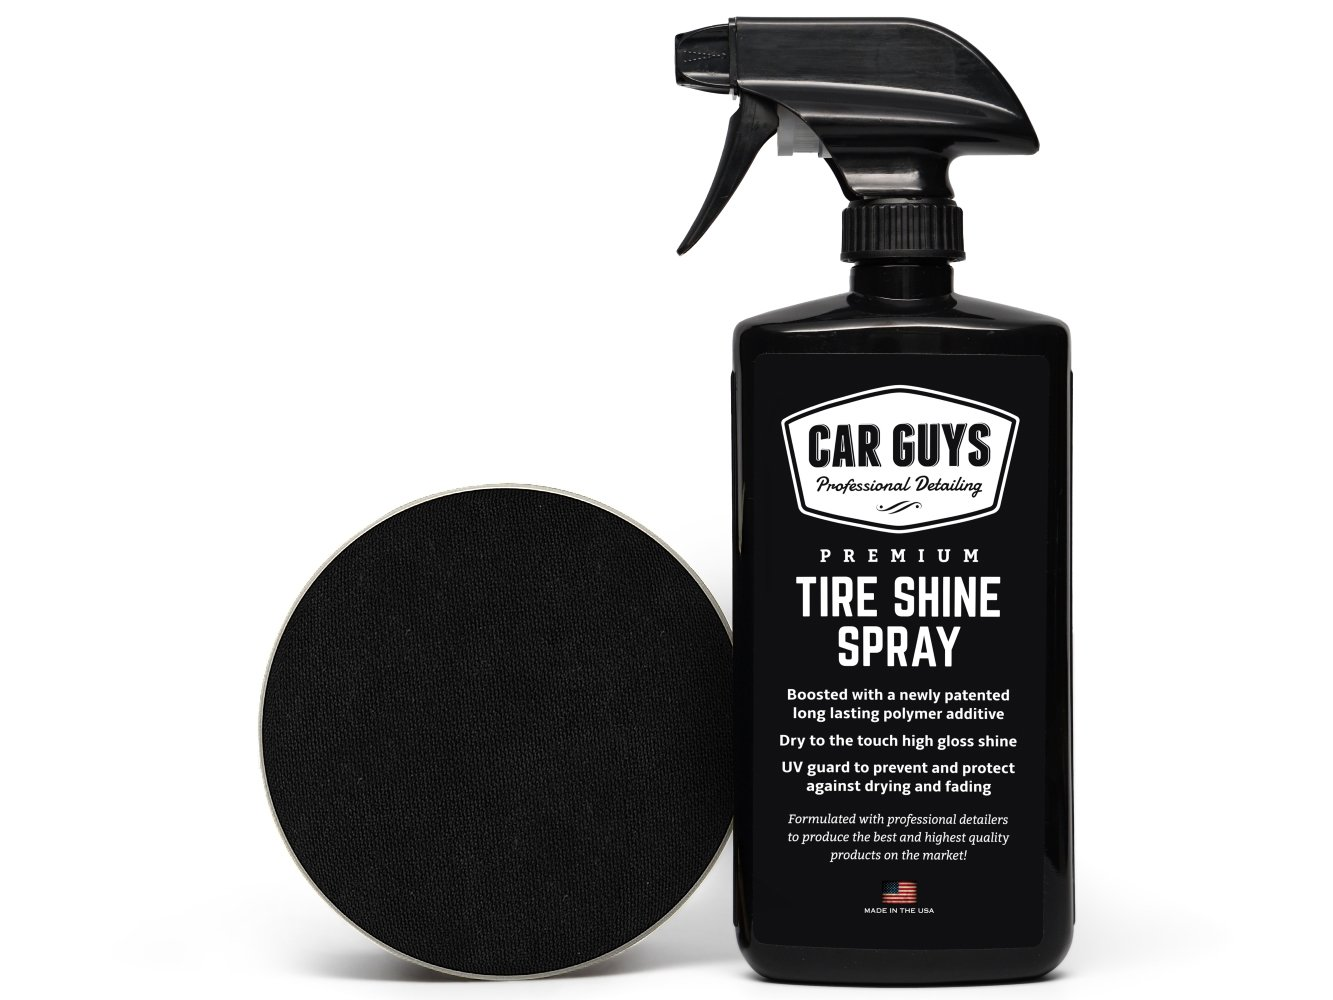 Tire Shine Spray – Best Tire Dressing Car Care Kit for Car Tires After a Car Wash – Car Detailing Kit for Wheels and Tires with Included Tire Shine Applicator – by Car Guys Auto Detailing Supplies